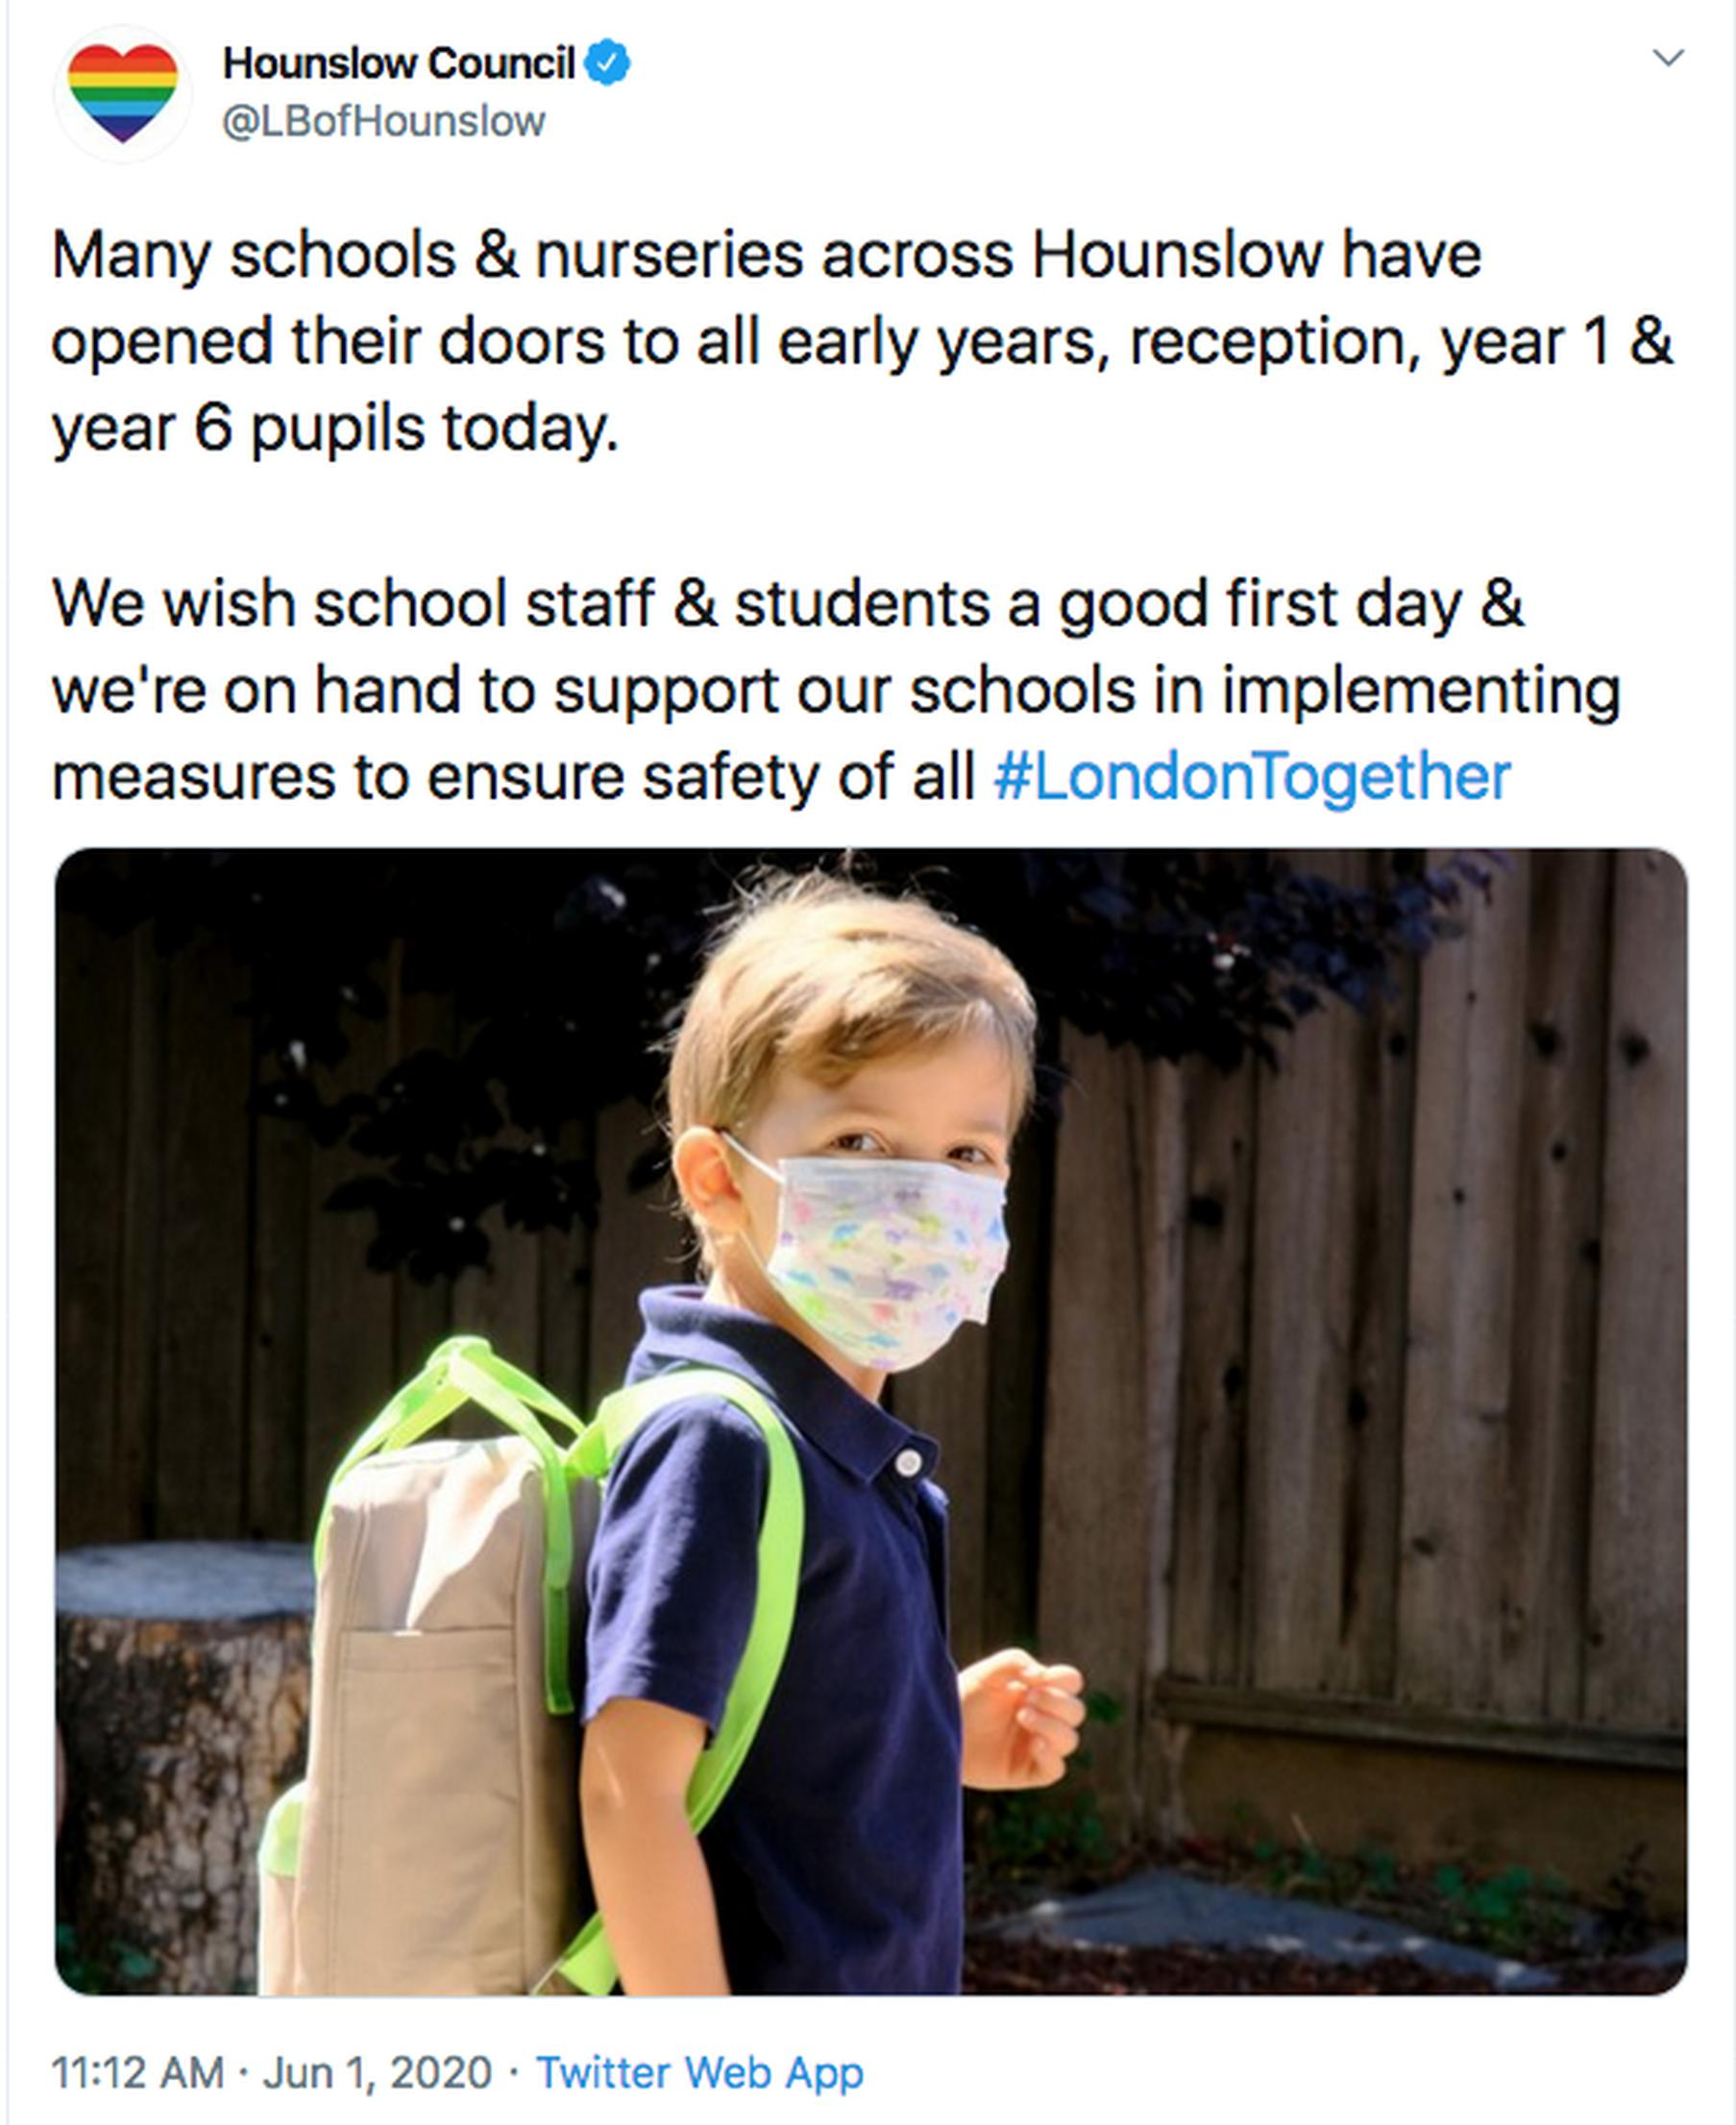 Hounslow Council provides travel support for school staff